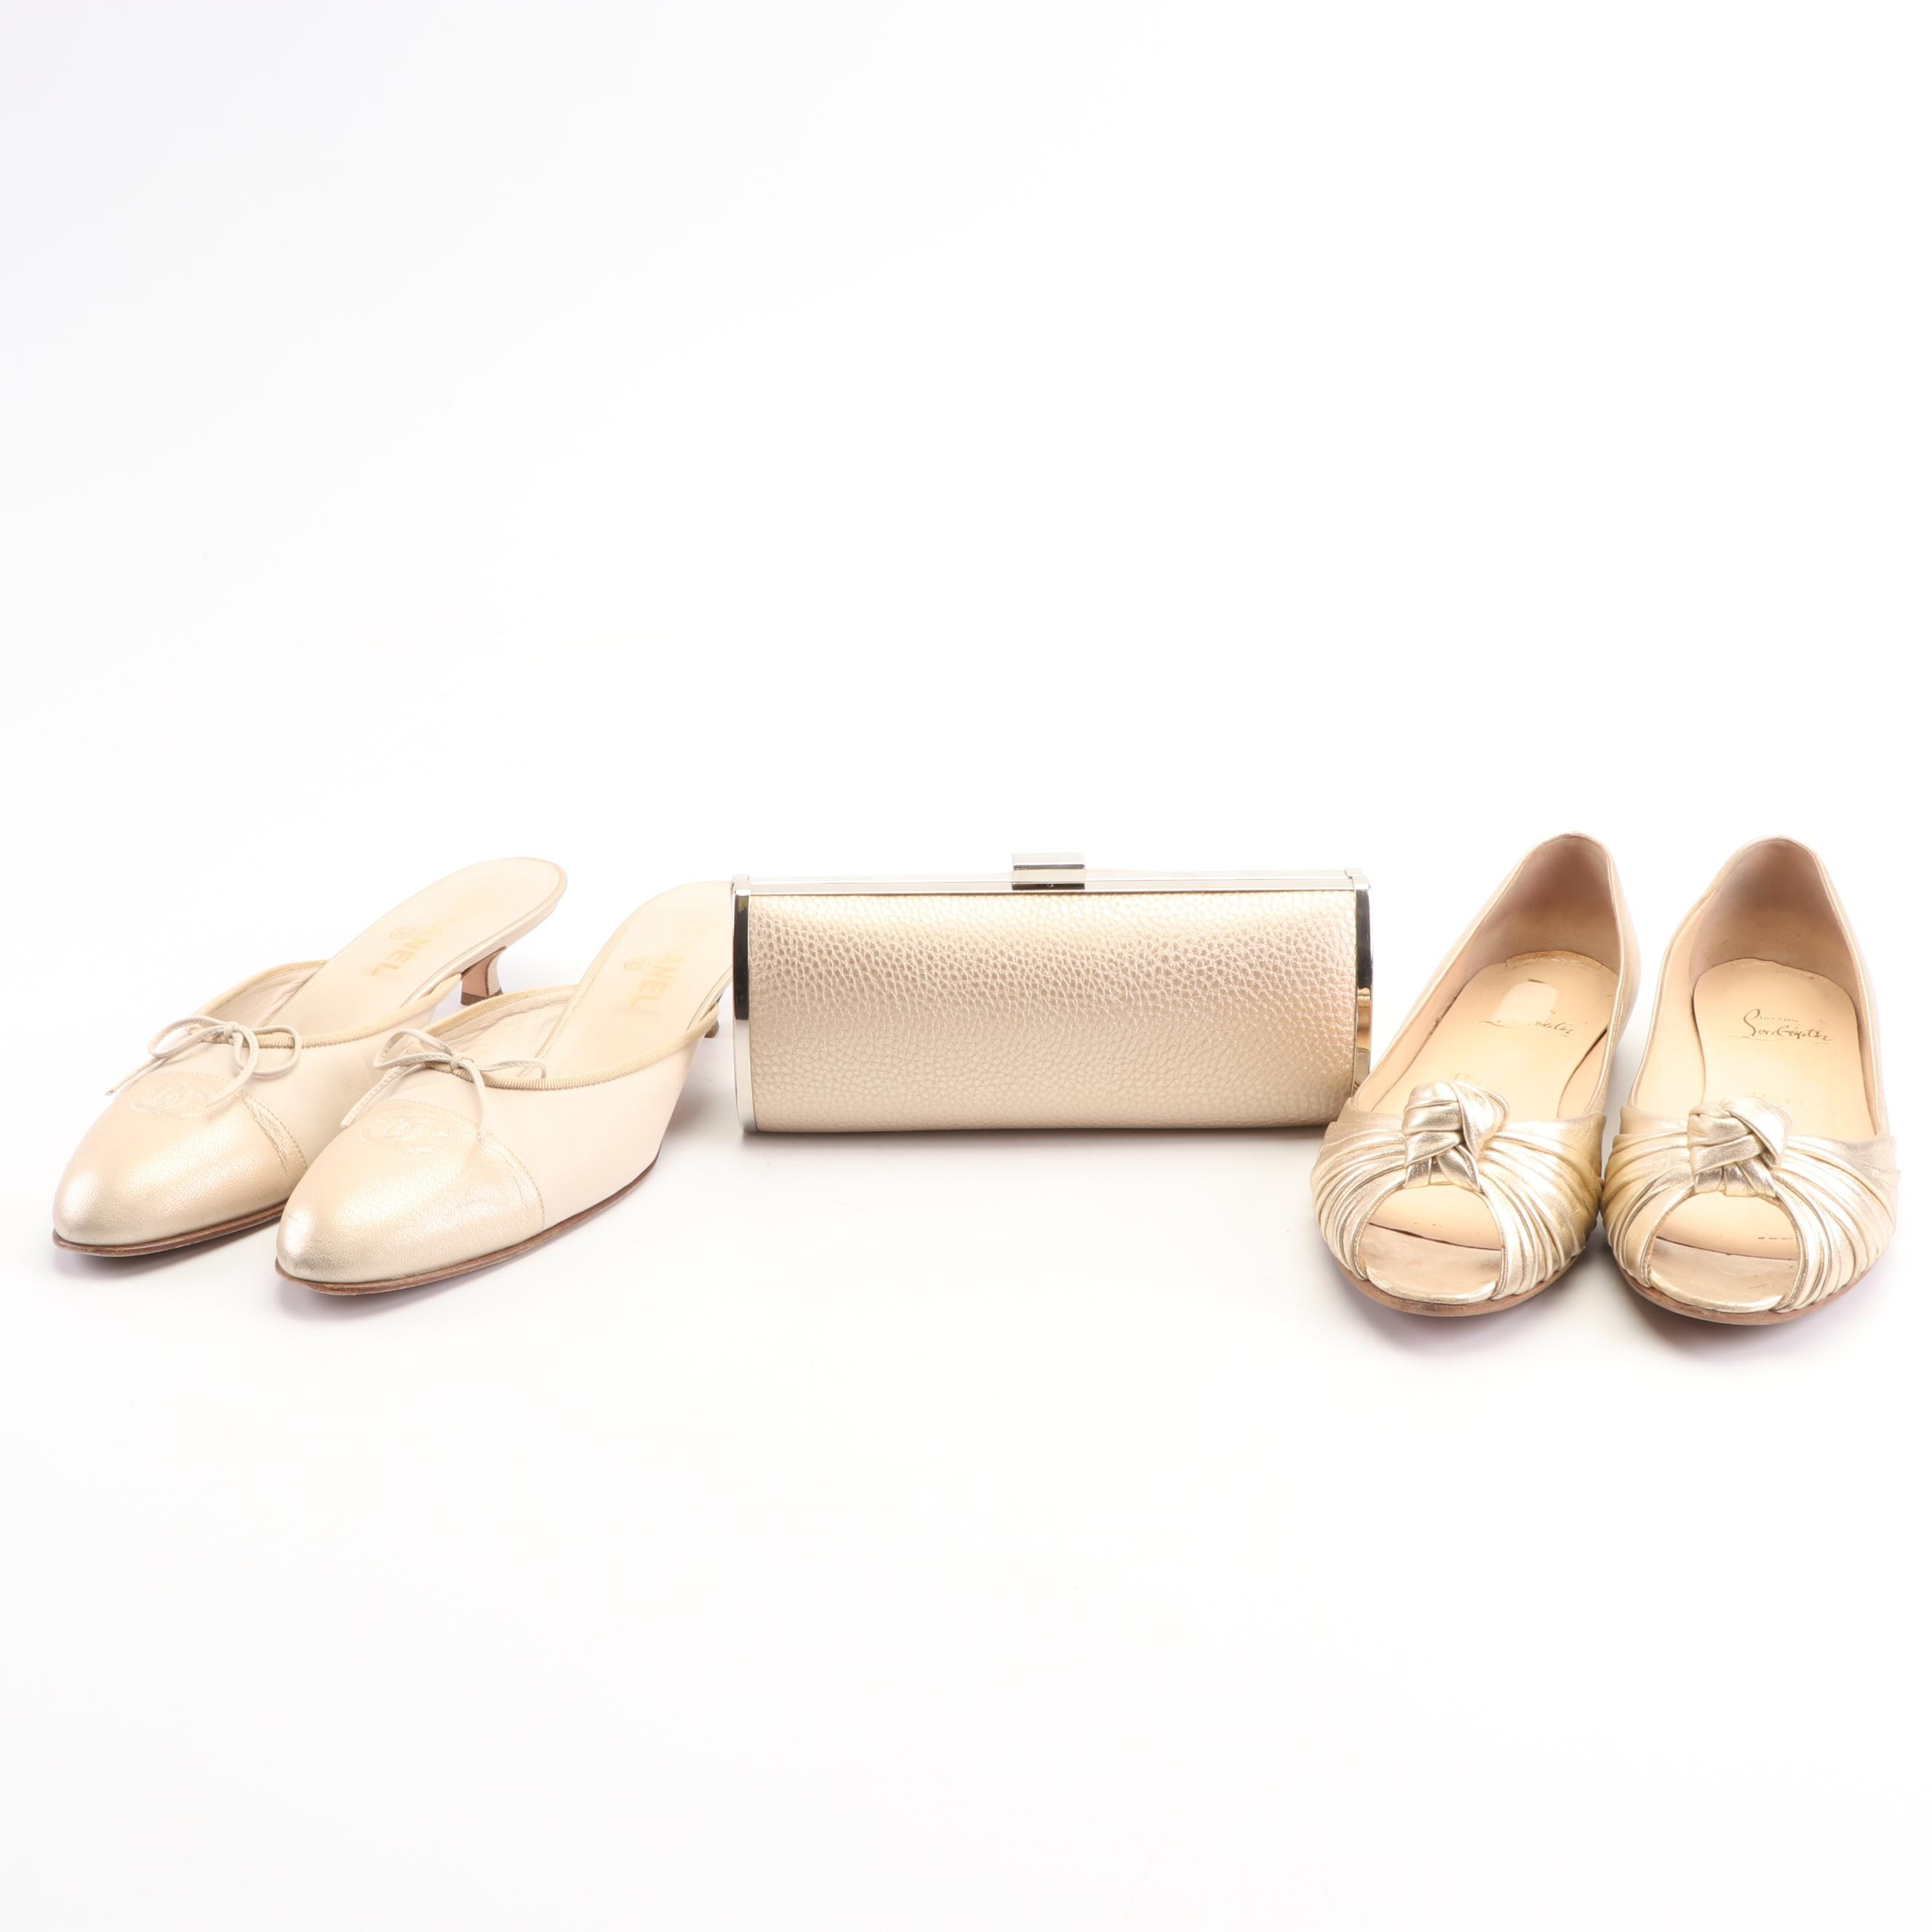 Chanel Mules and Christian Louboutin Flats with Kate Landry Clutch